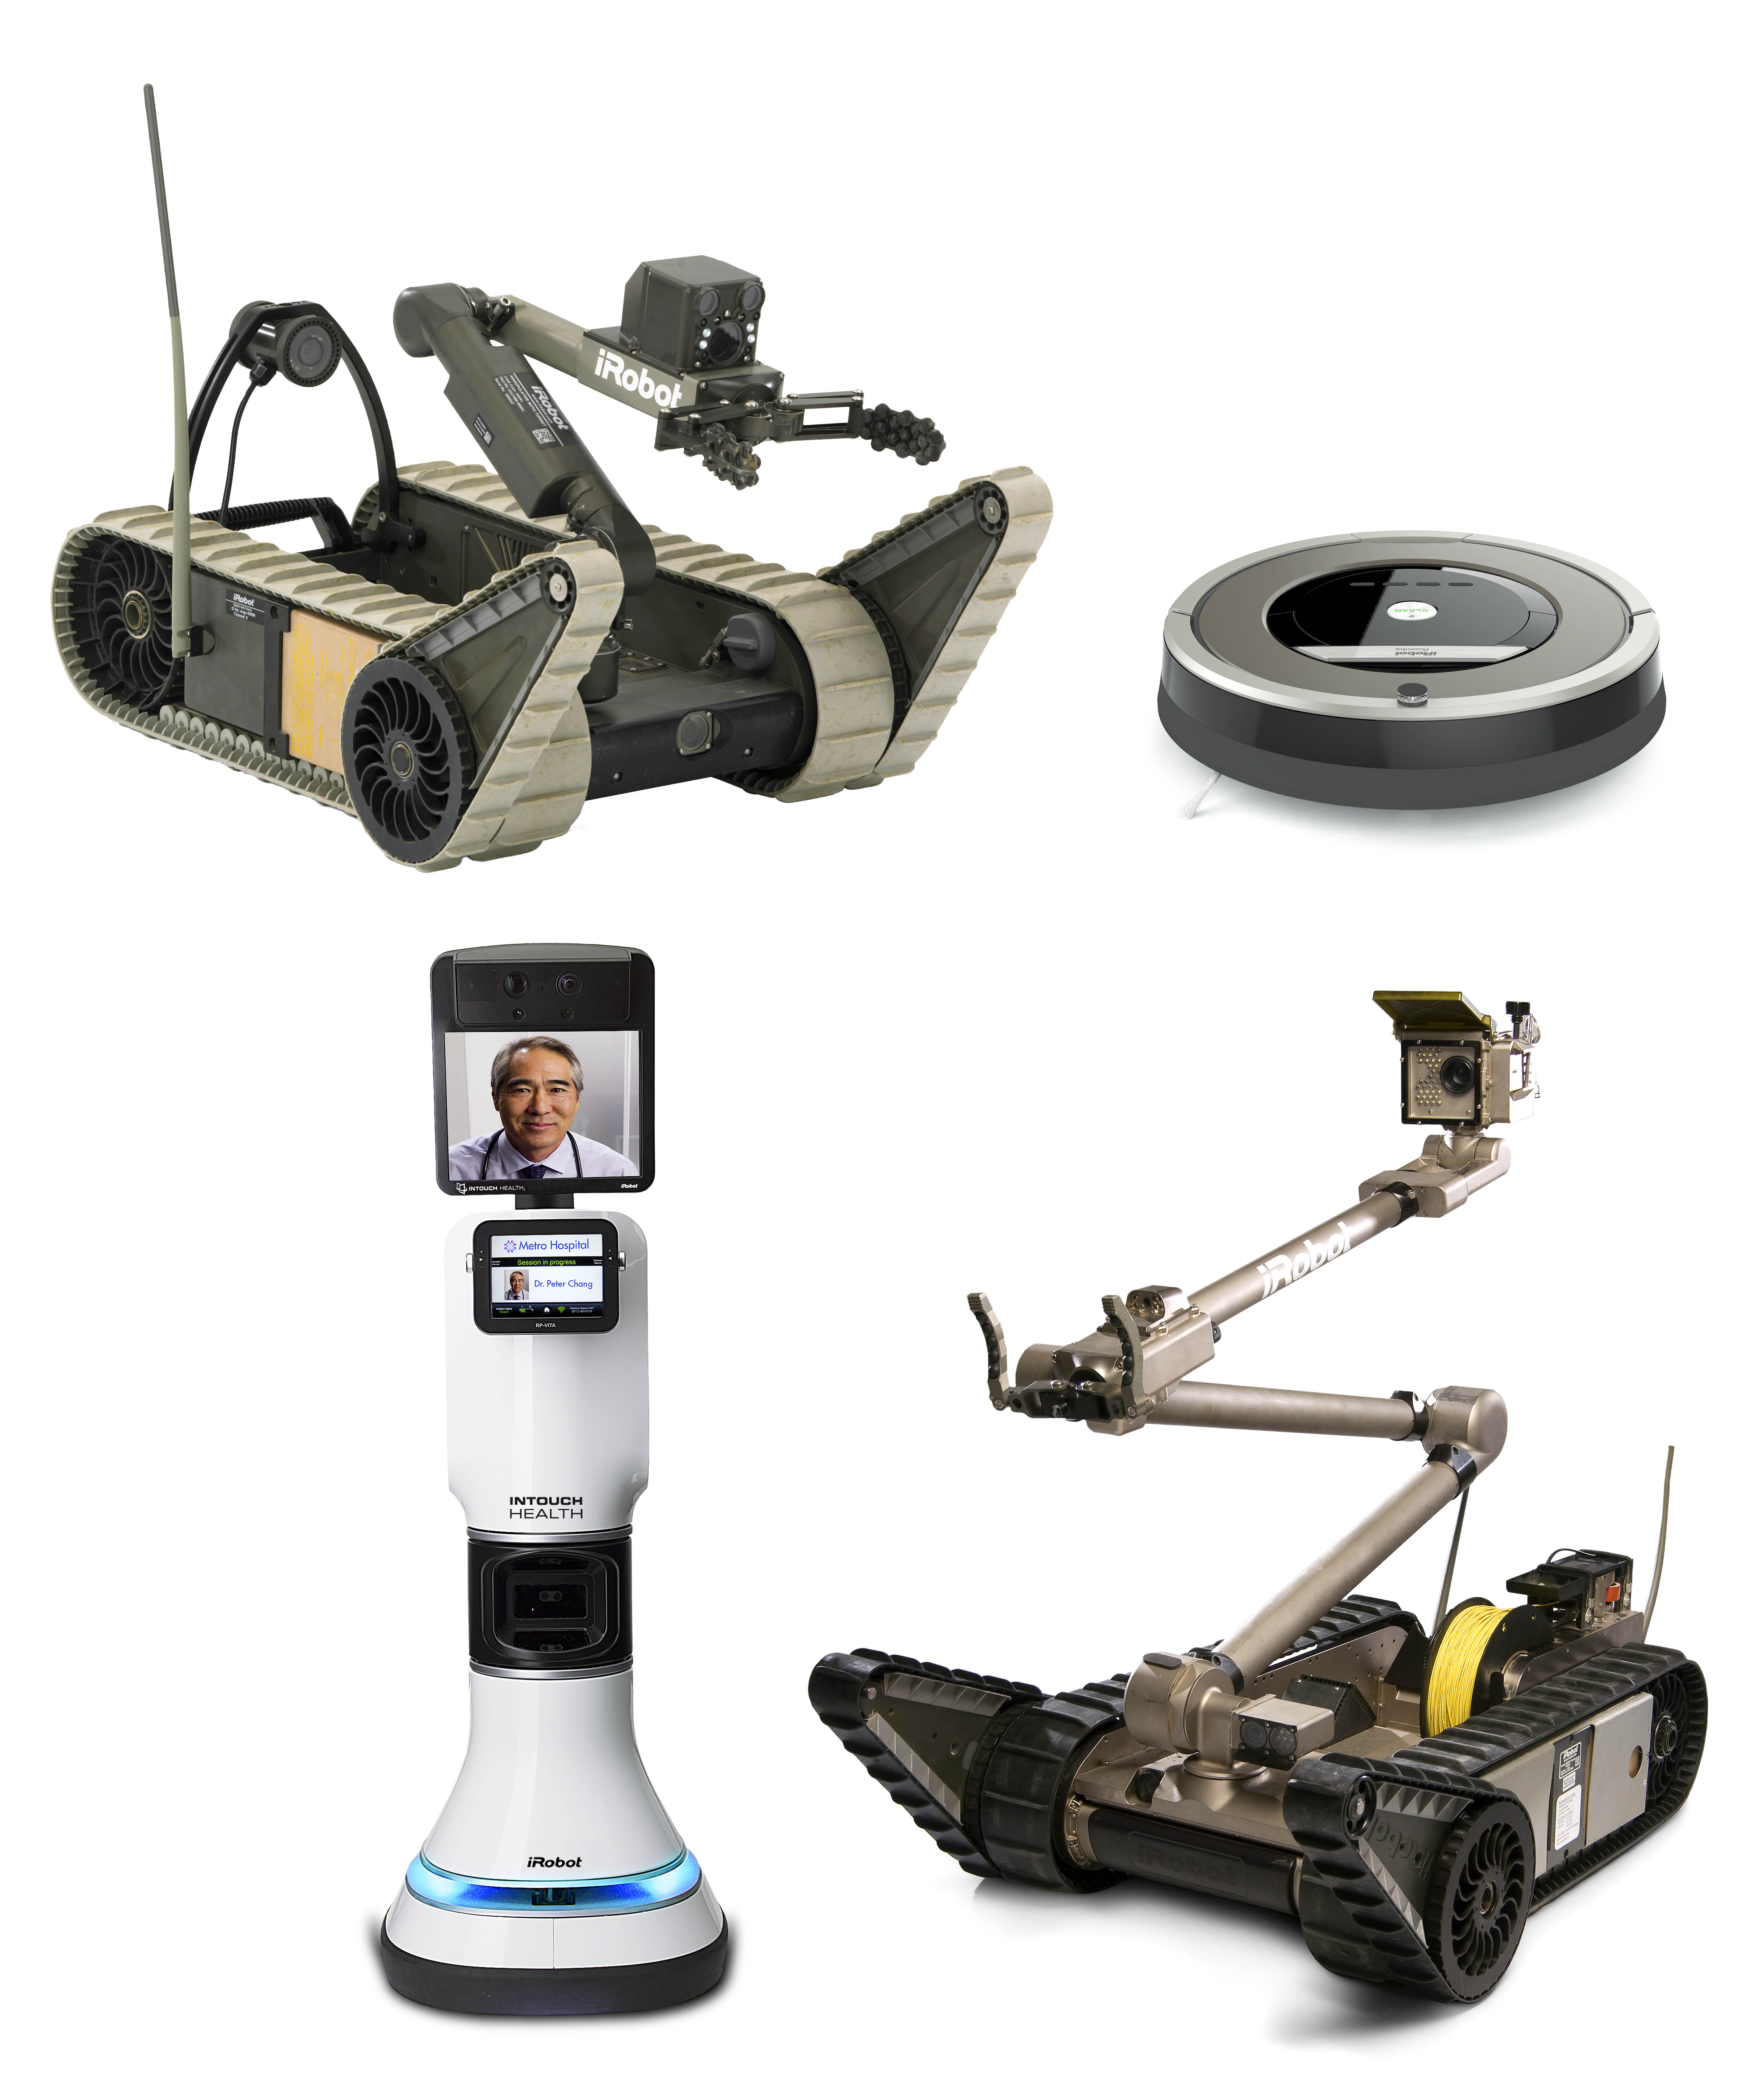 iRobot products